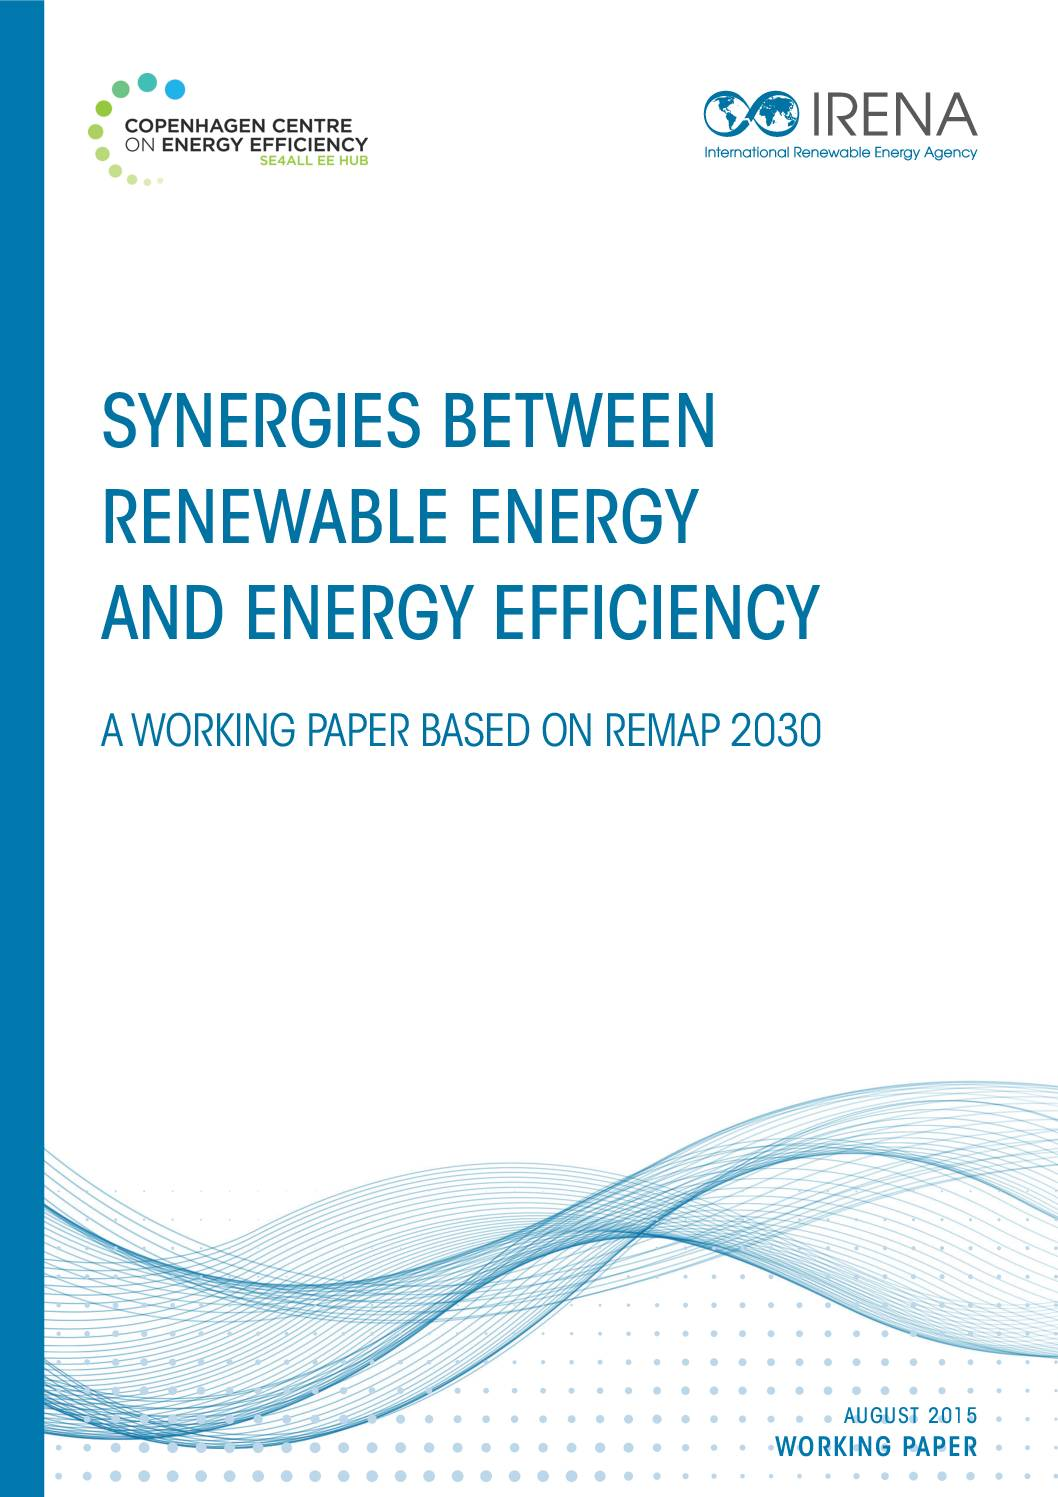 Synergies Between Renewable Energy and Energy Efficiency – A Working Paper Based on REMAP 2030